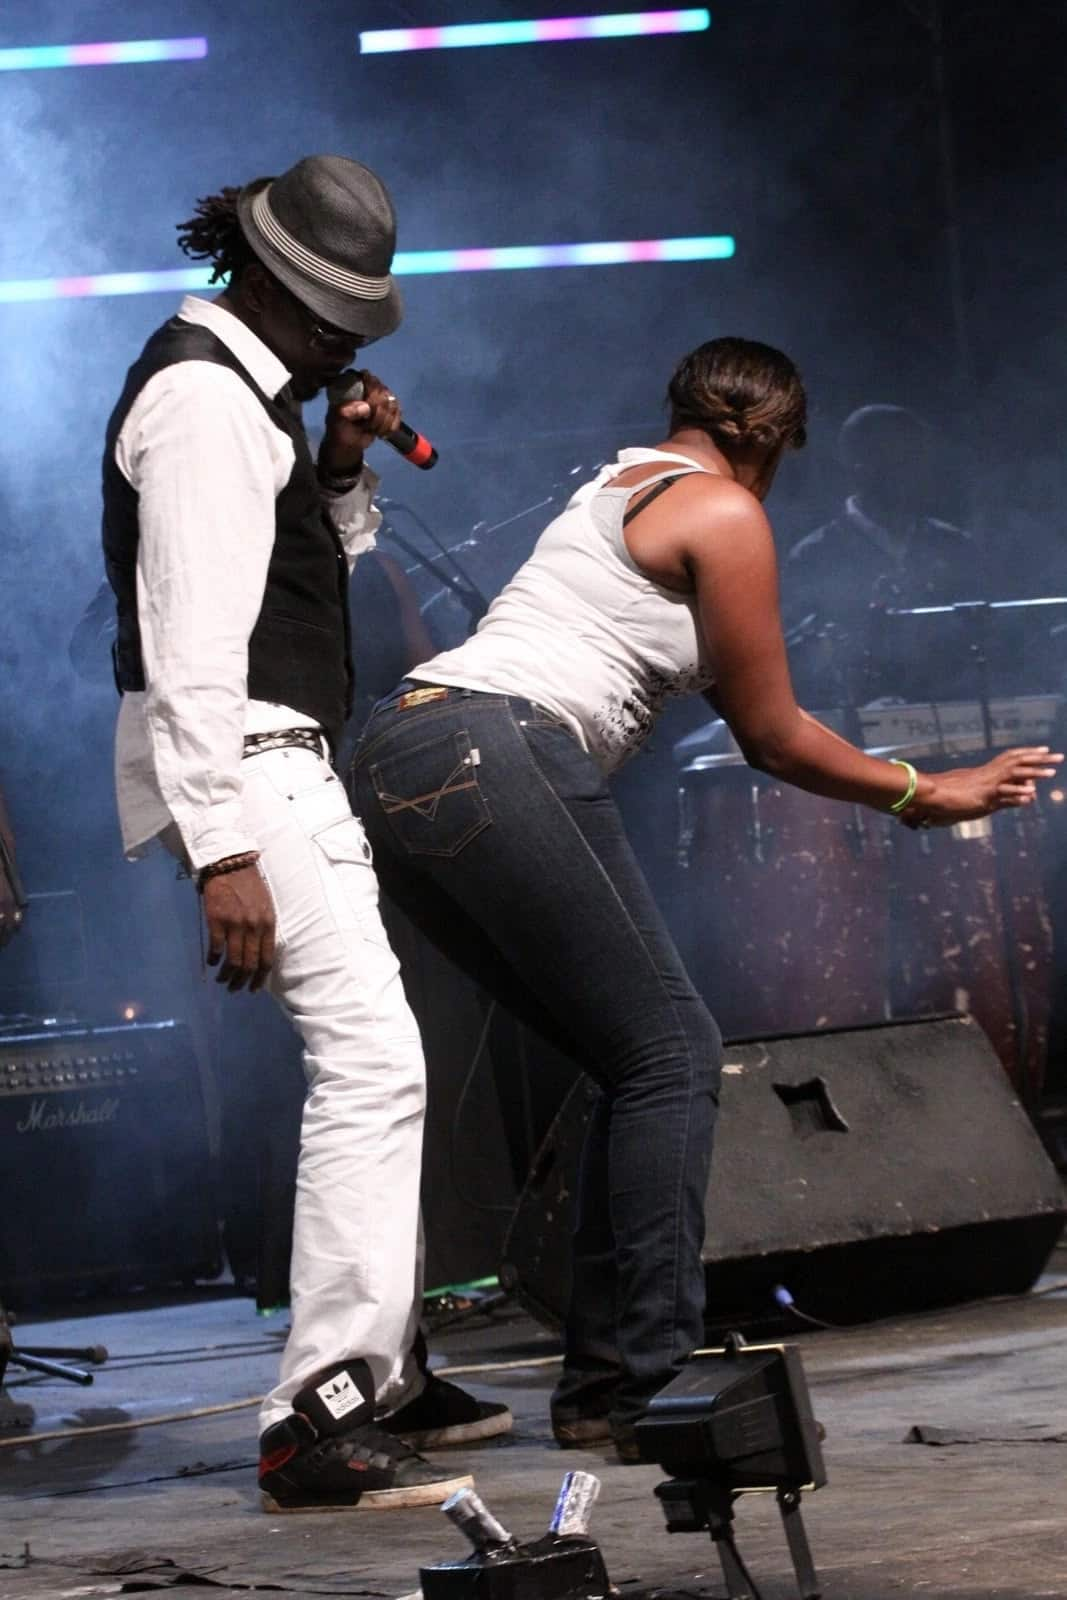 nameless and wahu fight in public